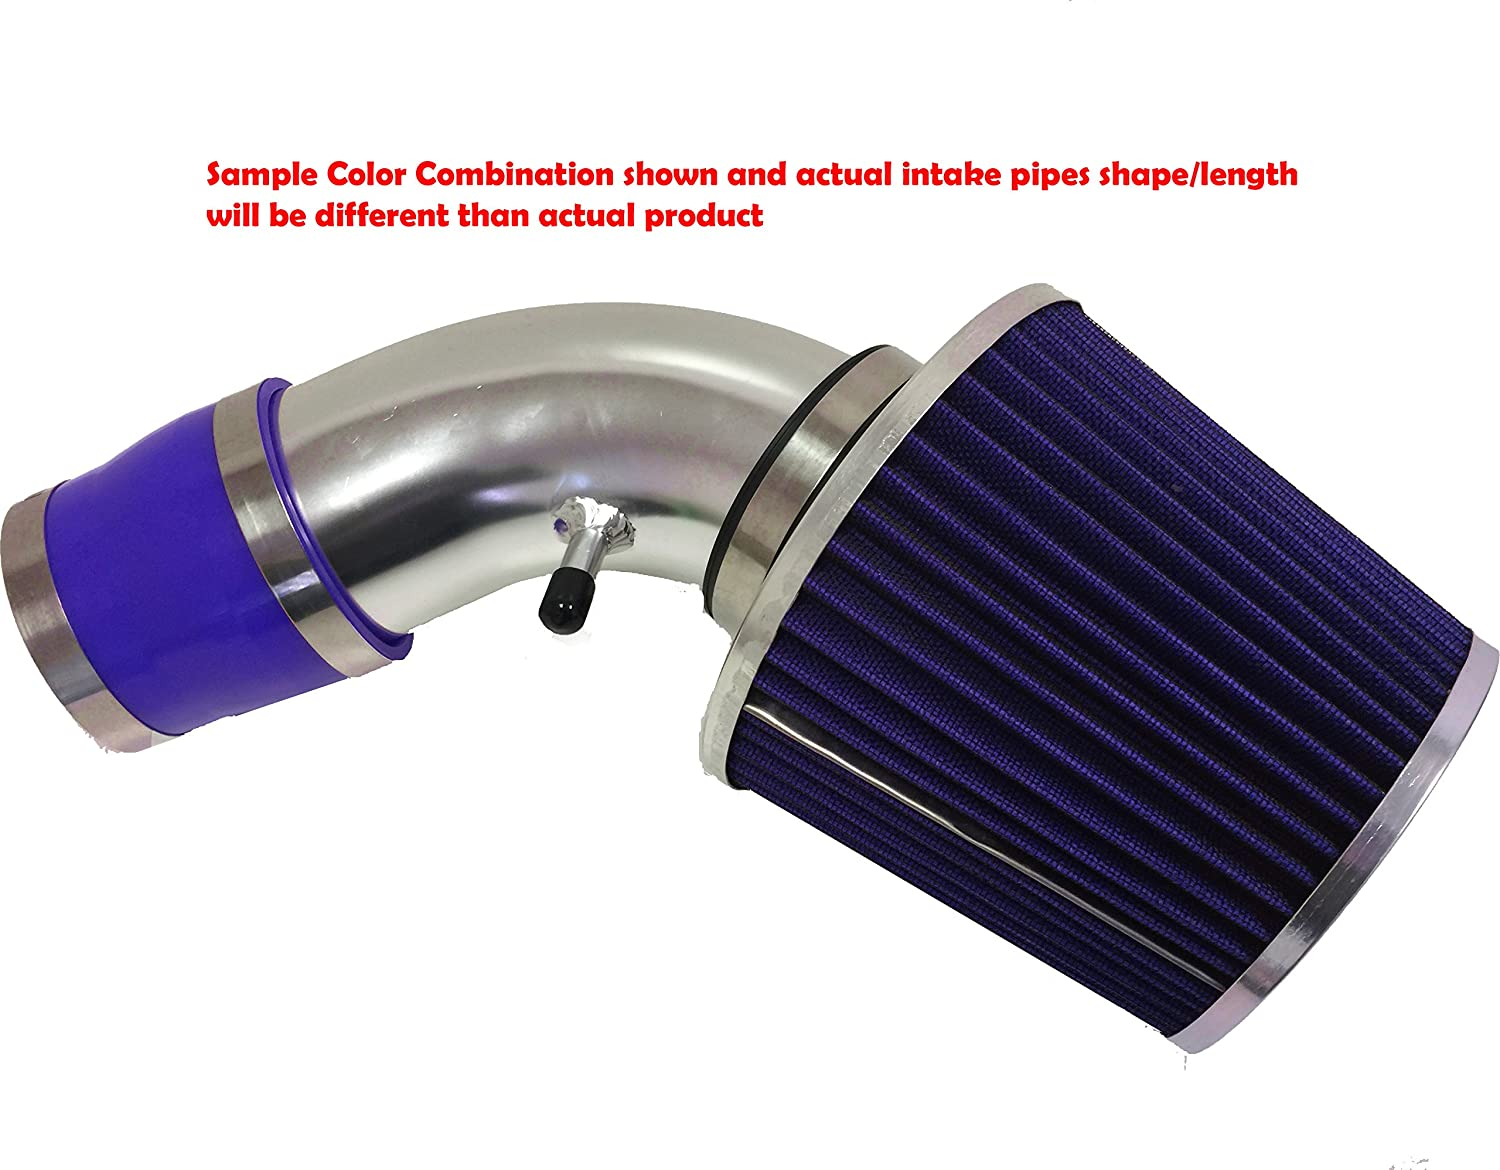 Black Accessories with Blue Filter 1990 1991 1992 1993 1994 1995 1996 1997 Toyota Corolla 1.6L 1.8L L4 Air Intake Filter Kit System